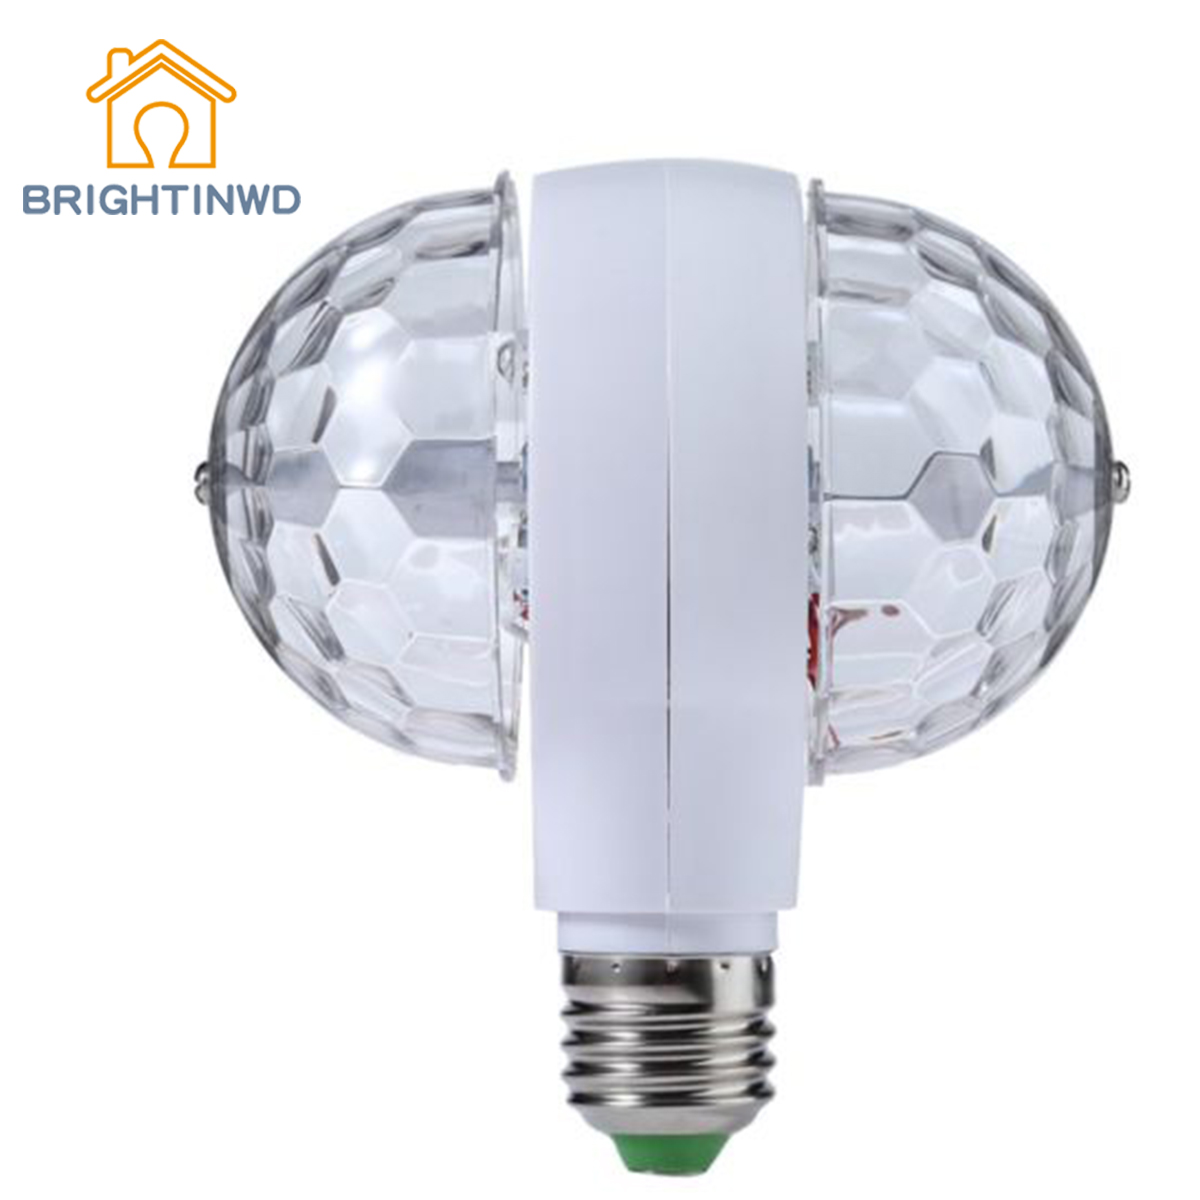 BRIGHTINWD Disco Stage Light RGB E27 LED Lights Crystal Ball Bulb 2-Head Rotating Party Xmas Lamp